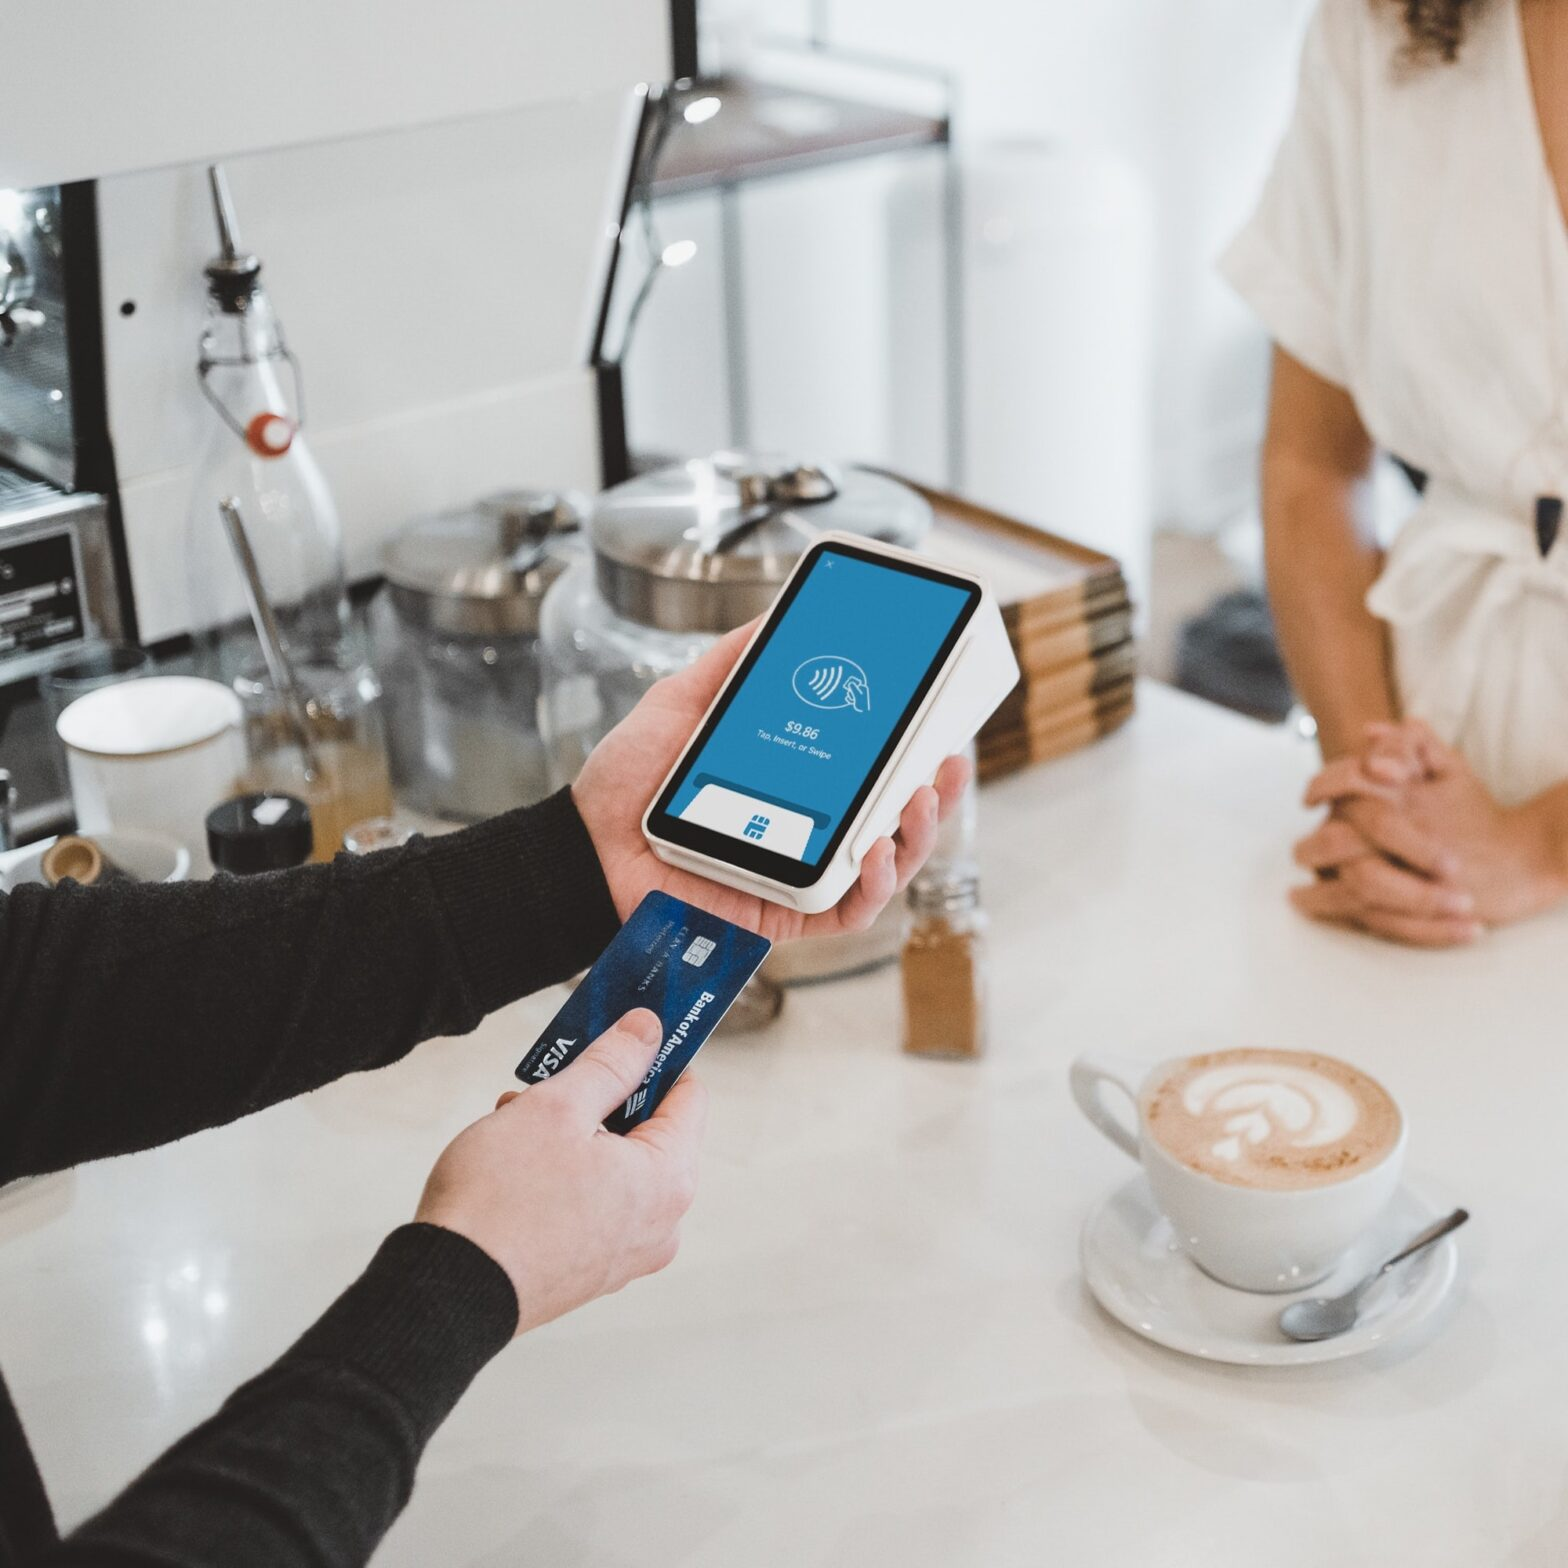 Customer journey that converts - a person making payment in a coffee shop